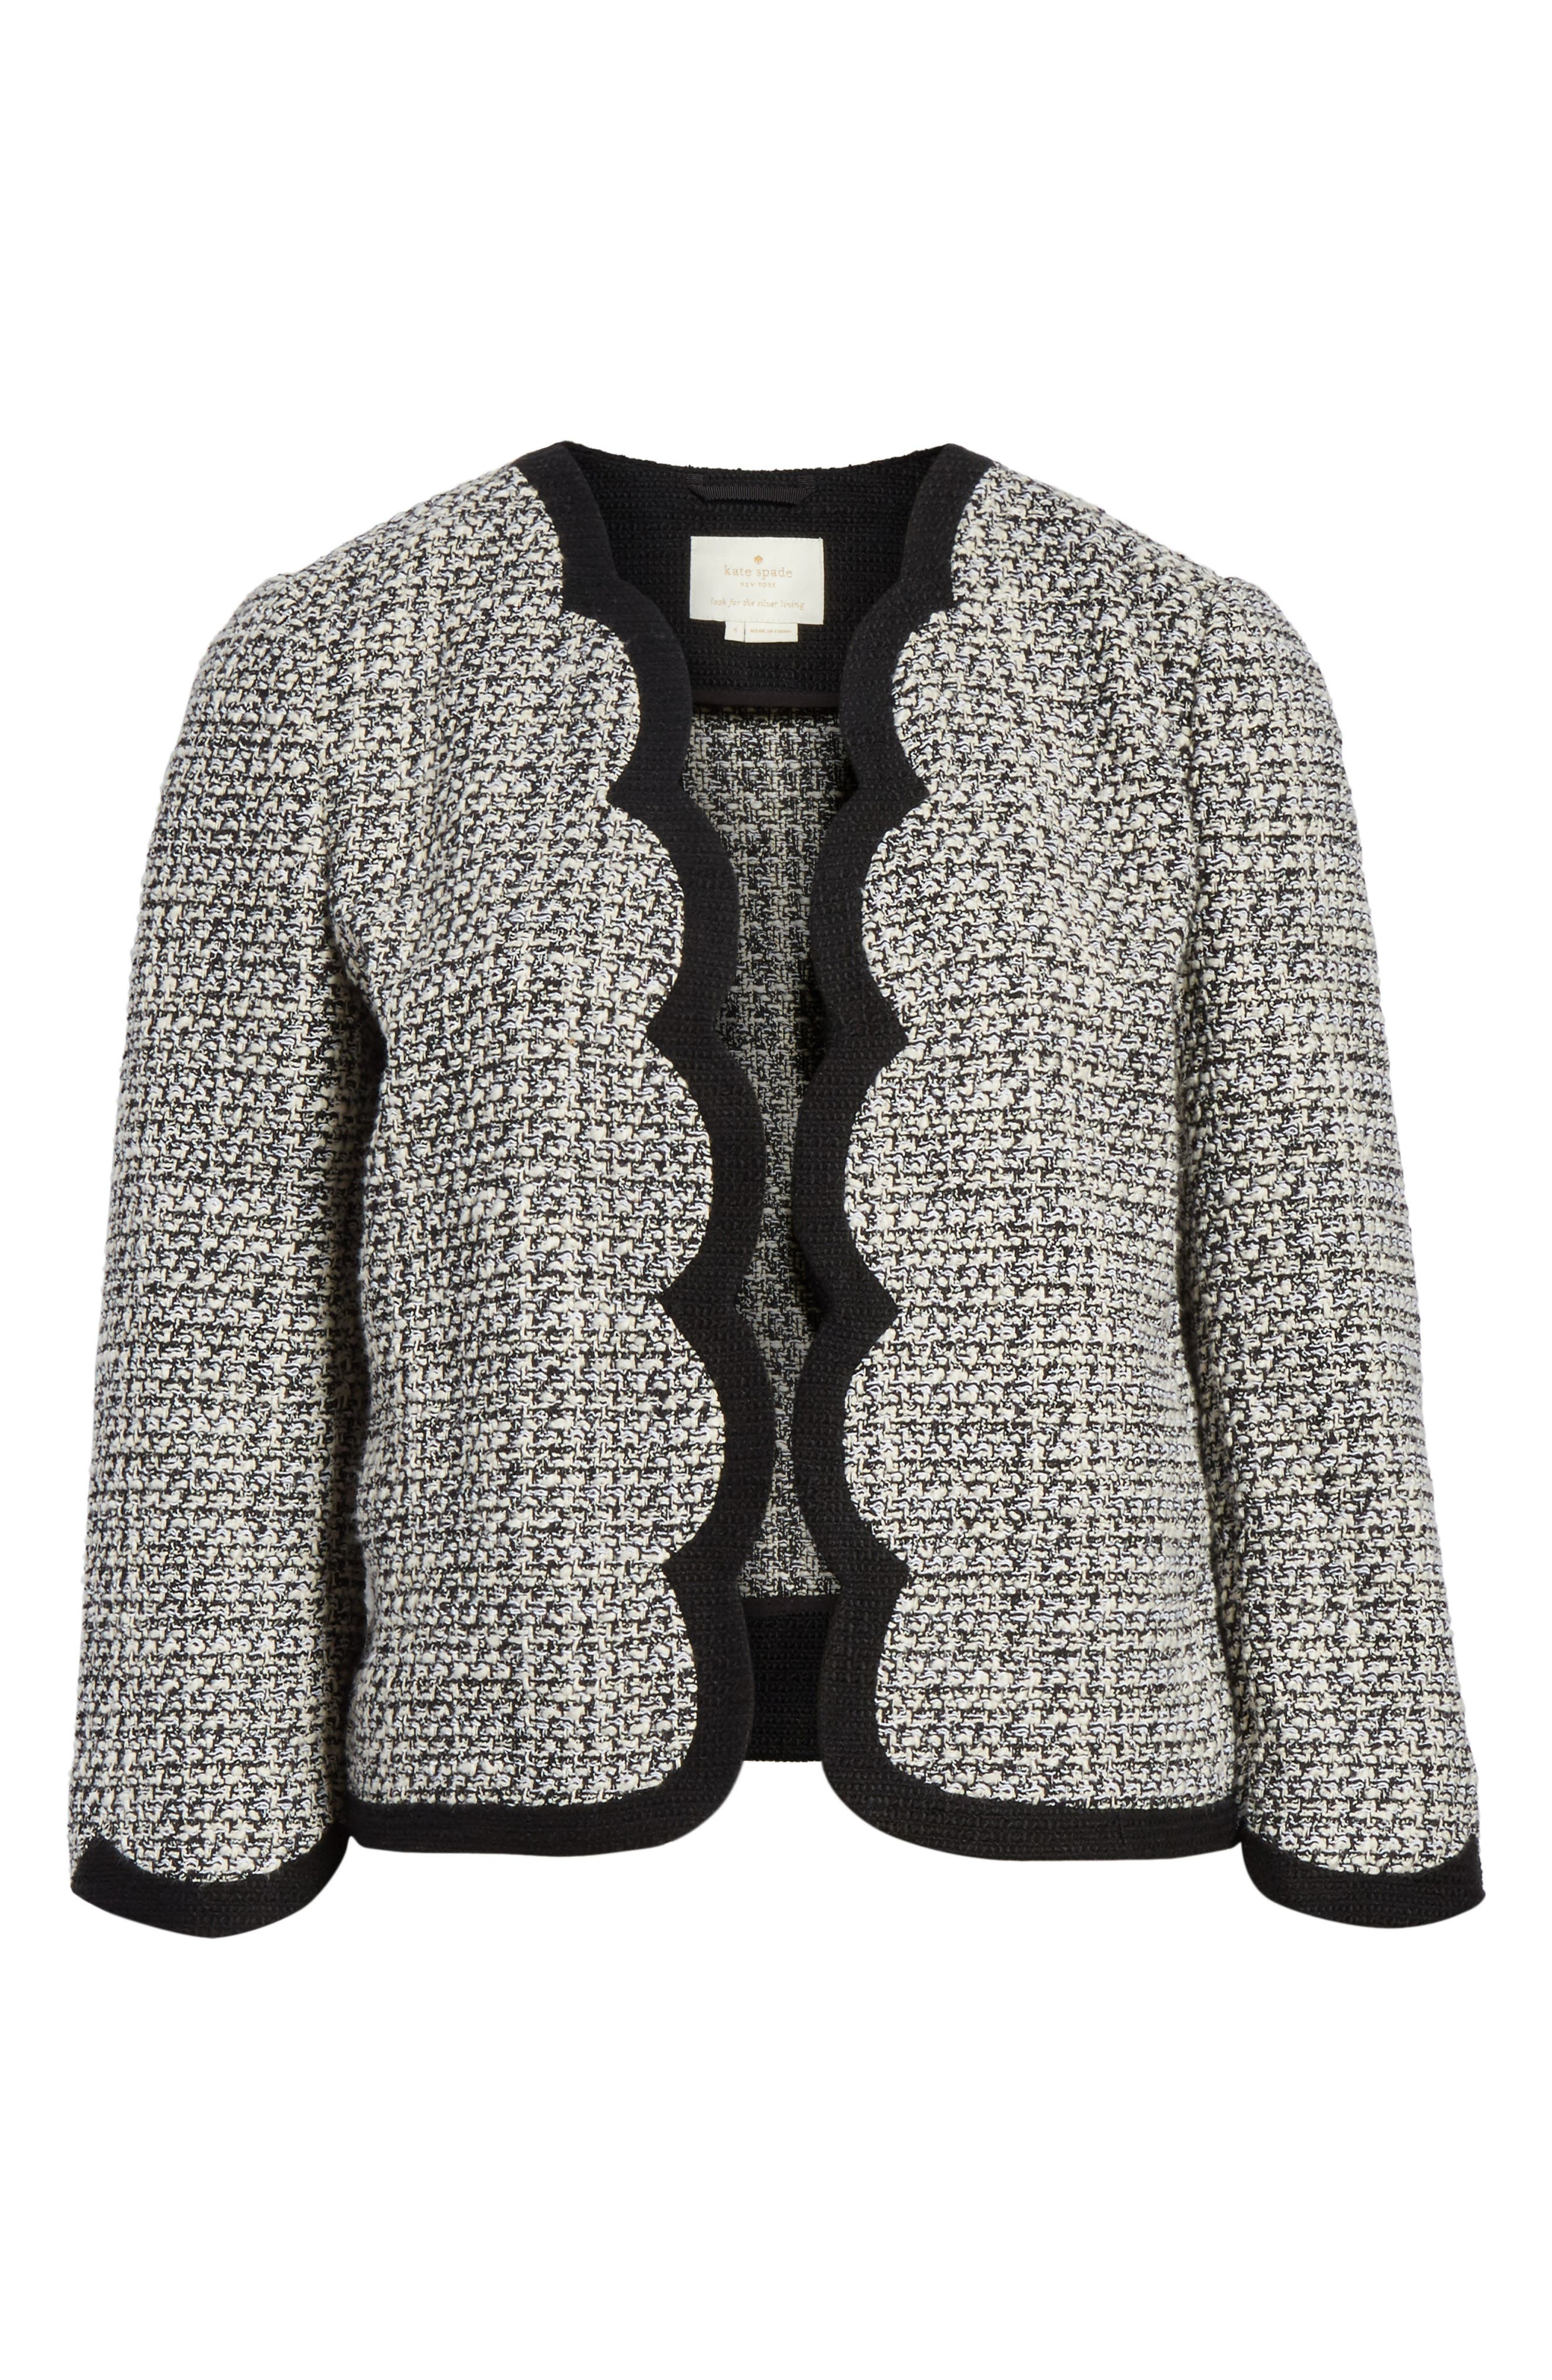 scallop tweed jacket,                             Alternate thumbnail 6, color,                             Black/ Cream